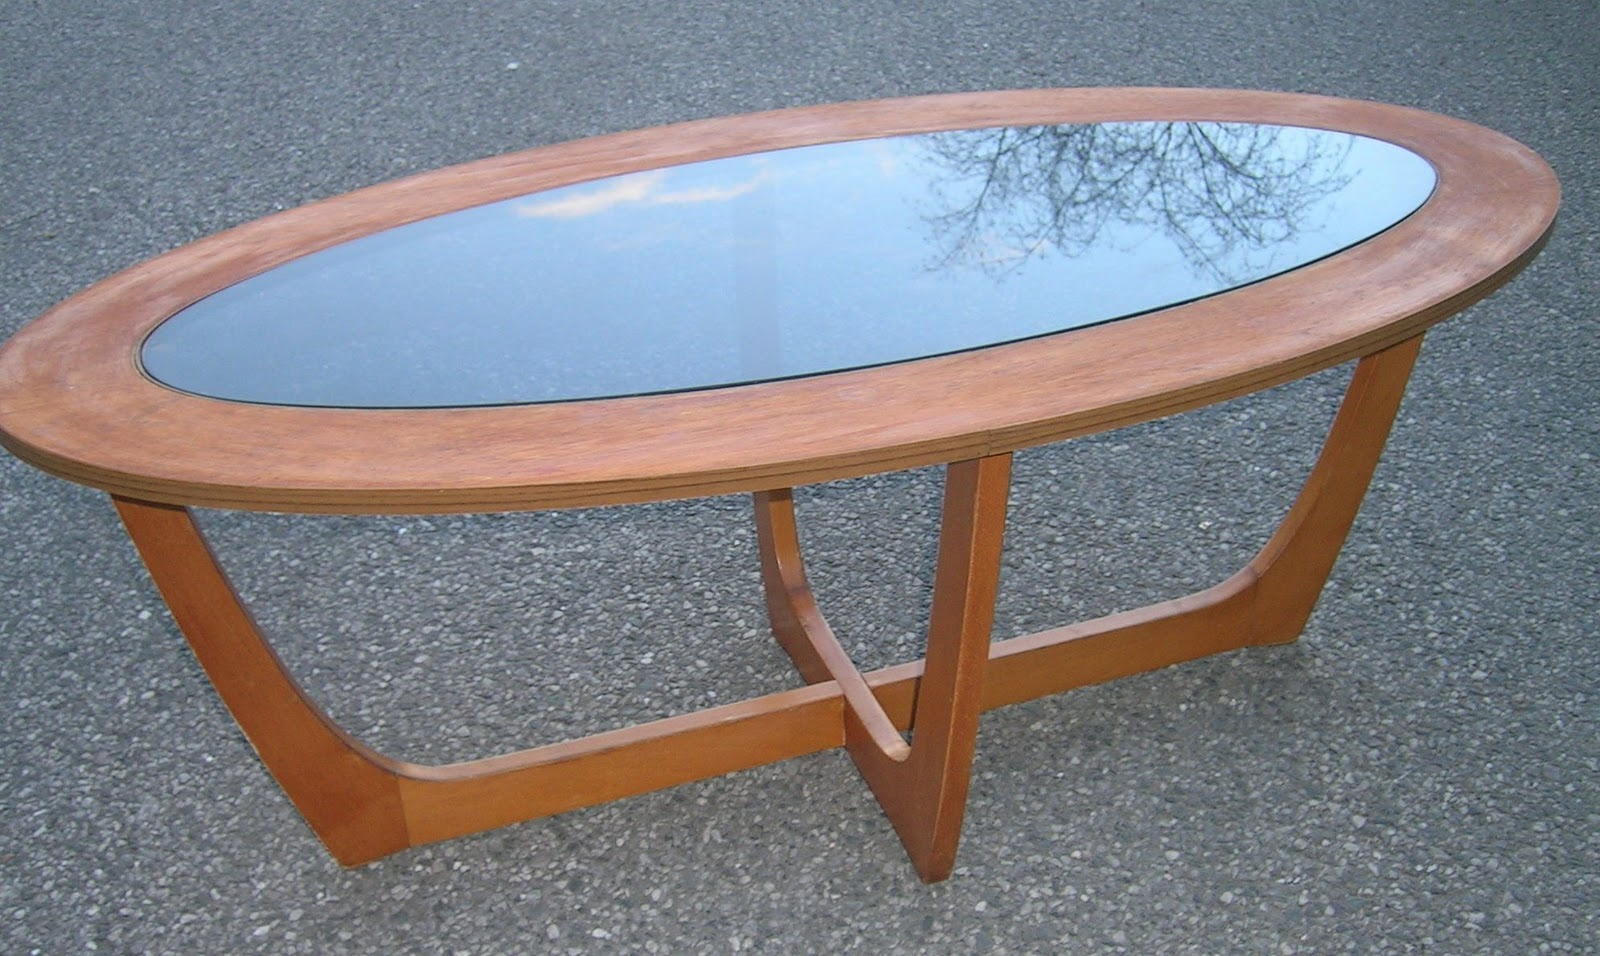 Permalink to woodworking plans oval coffee table